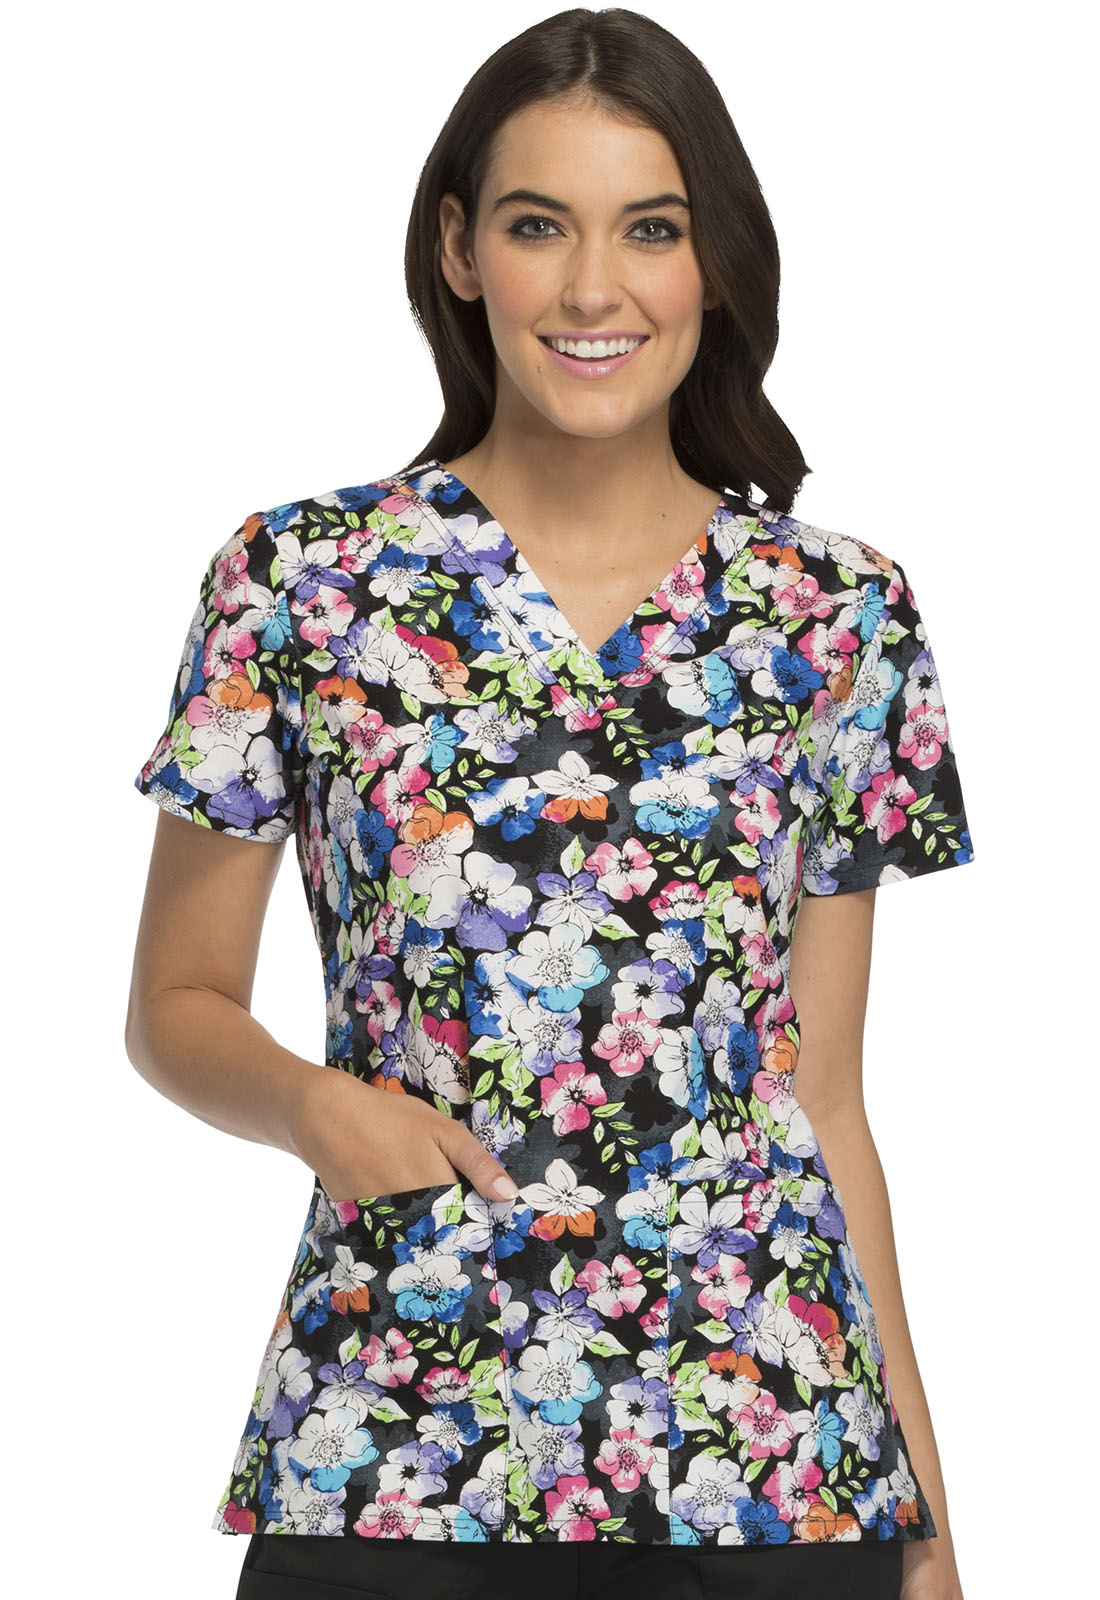 c65782d090f Cherokee Prints V-Neck Top CK616-SFLL from Uniforms for America